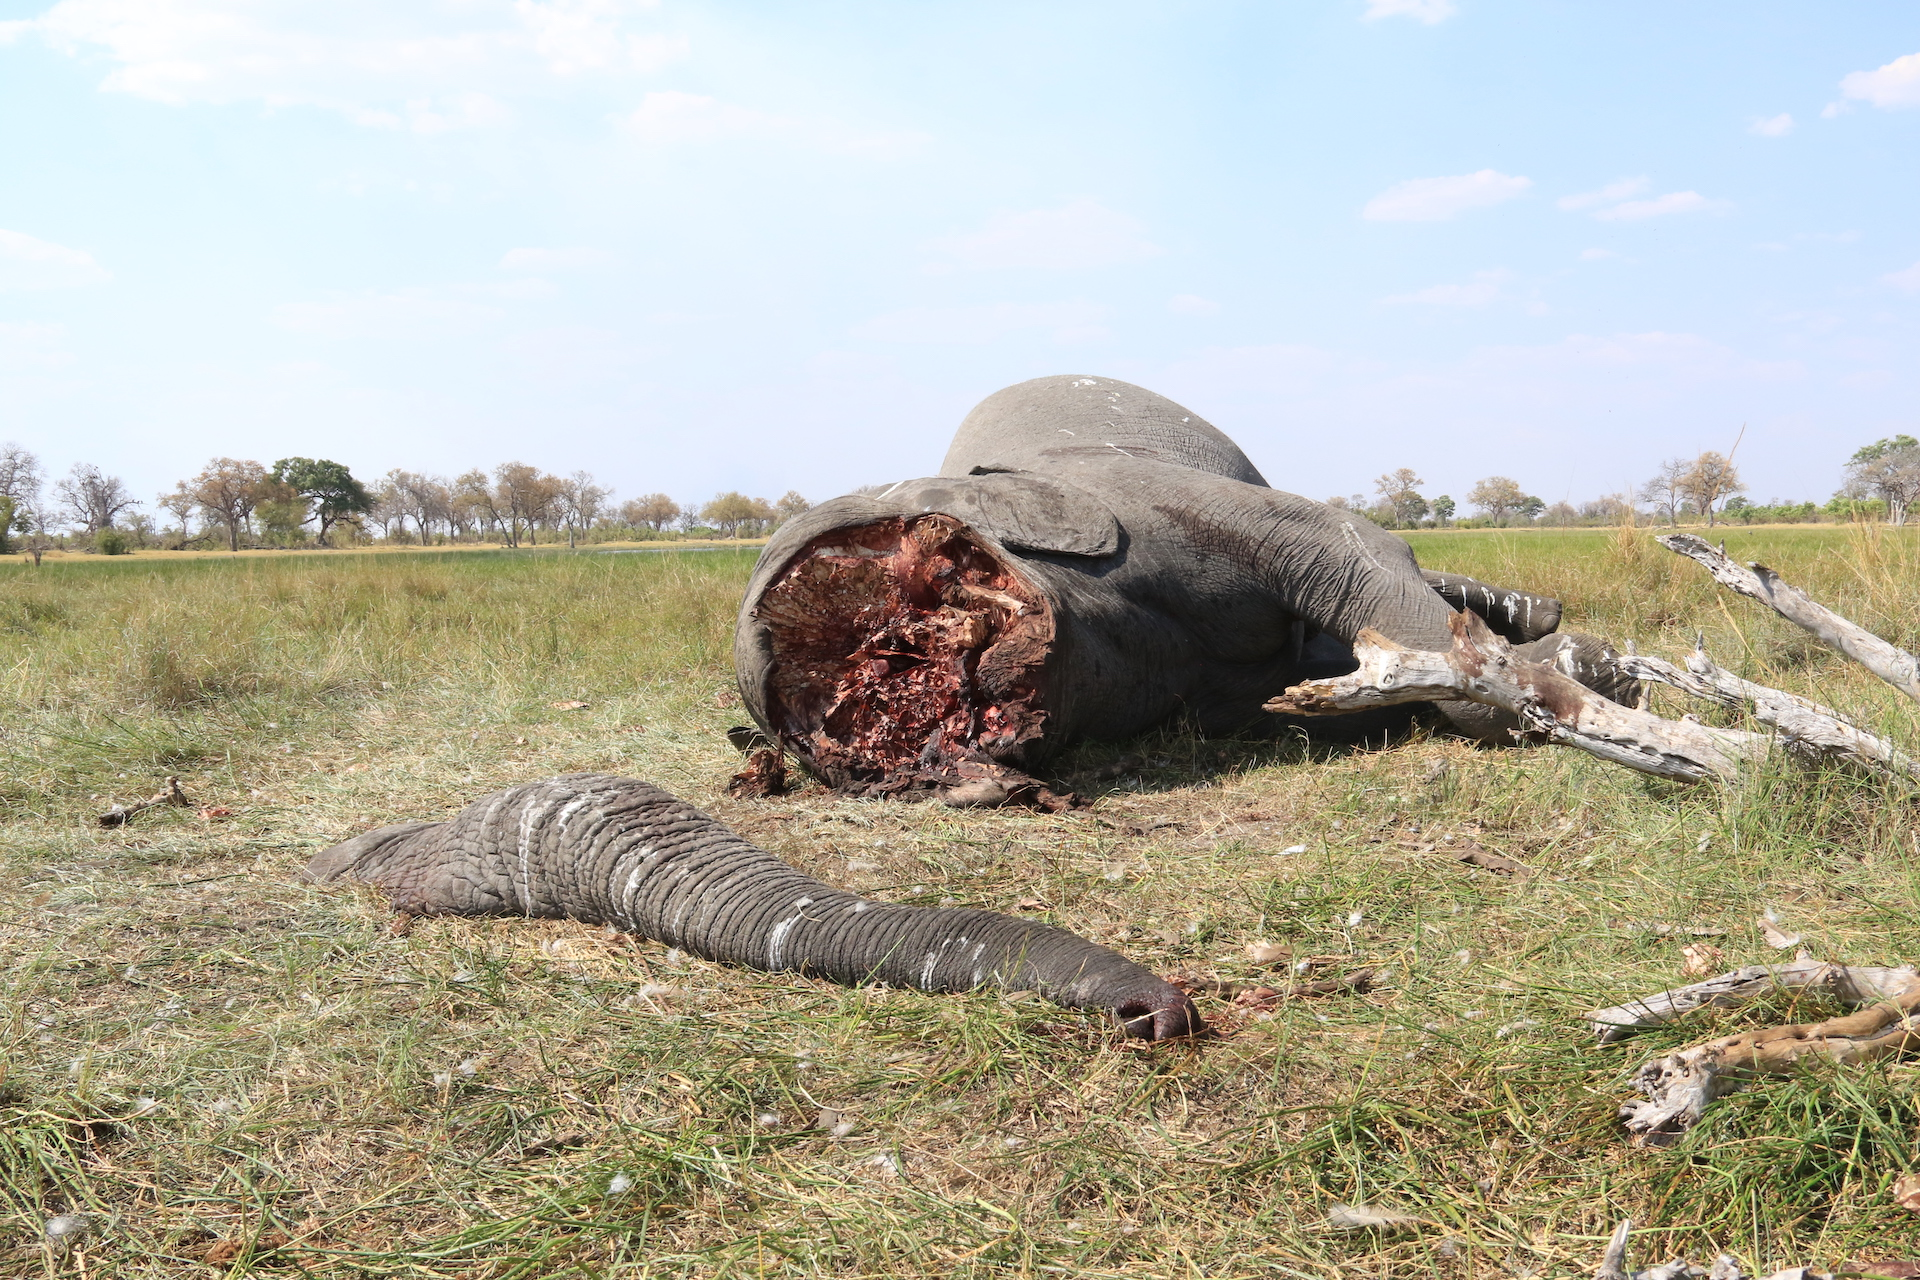 Elephant Poaching In Botswana Is Nearly 600% More Than In 2014